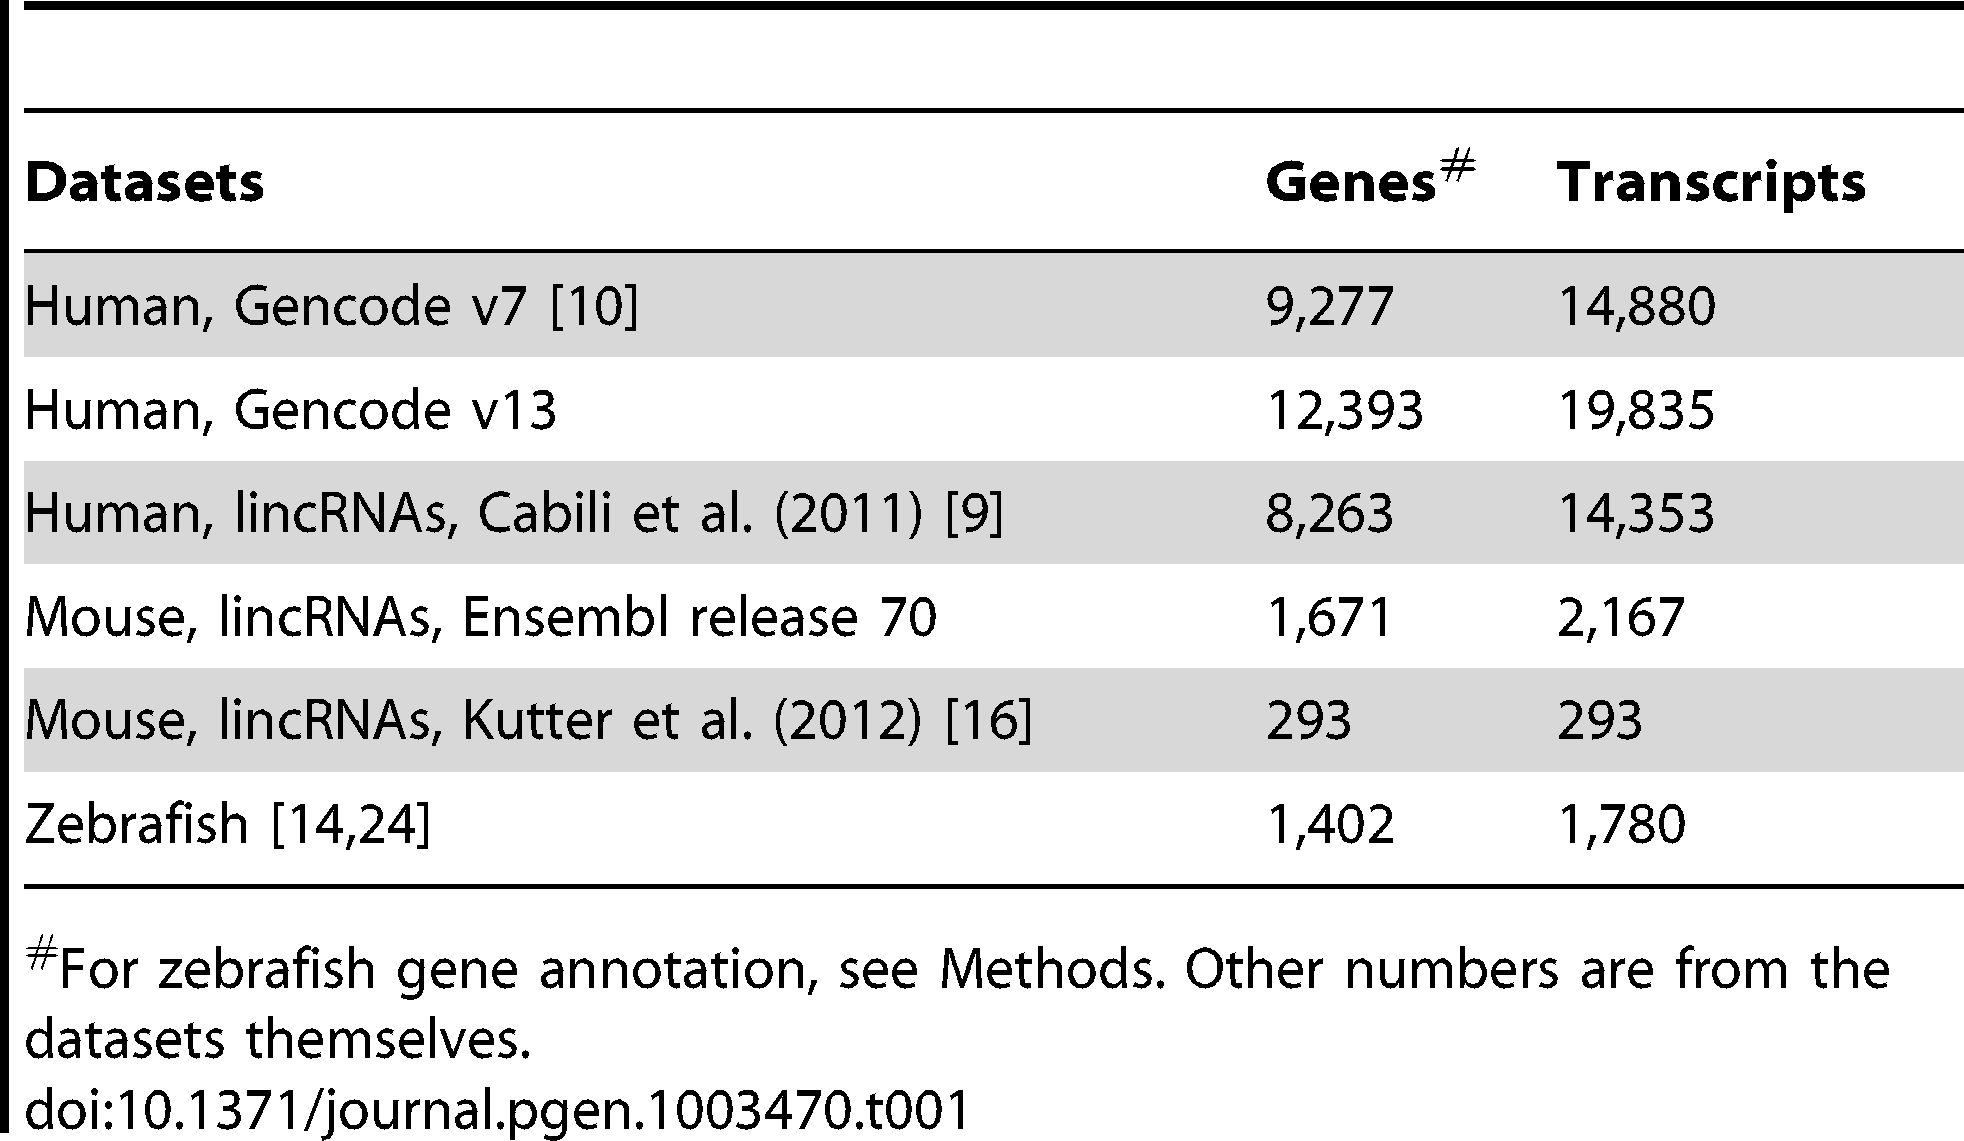 Number of genes and transcripts in studied datasets.